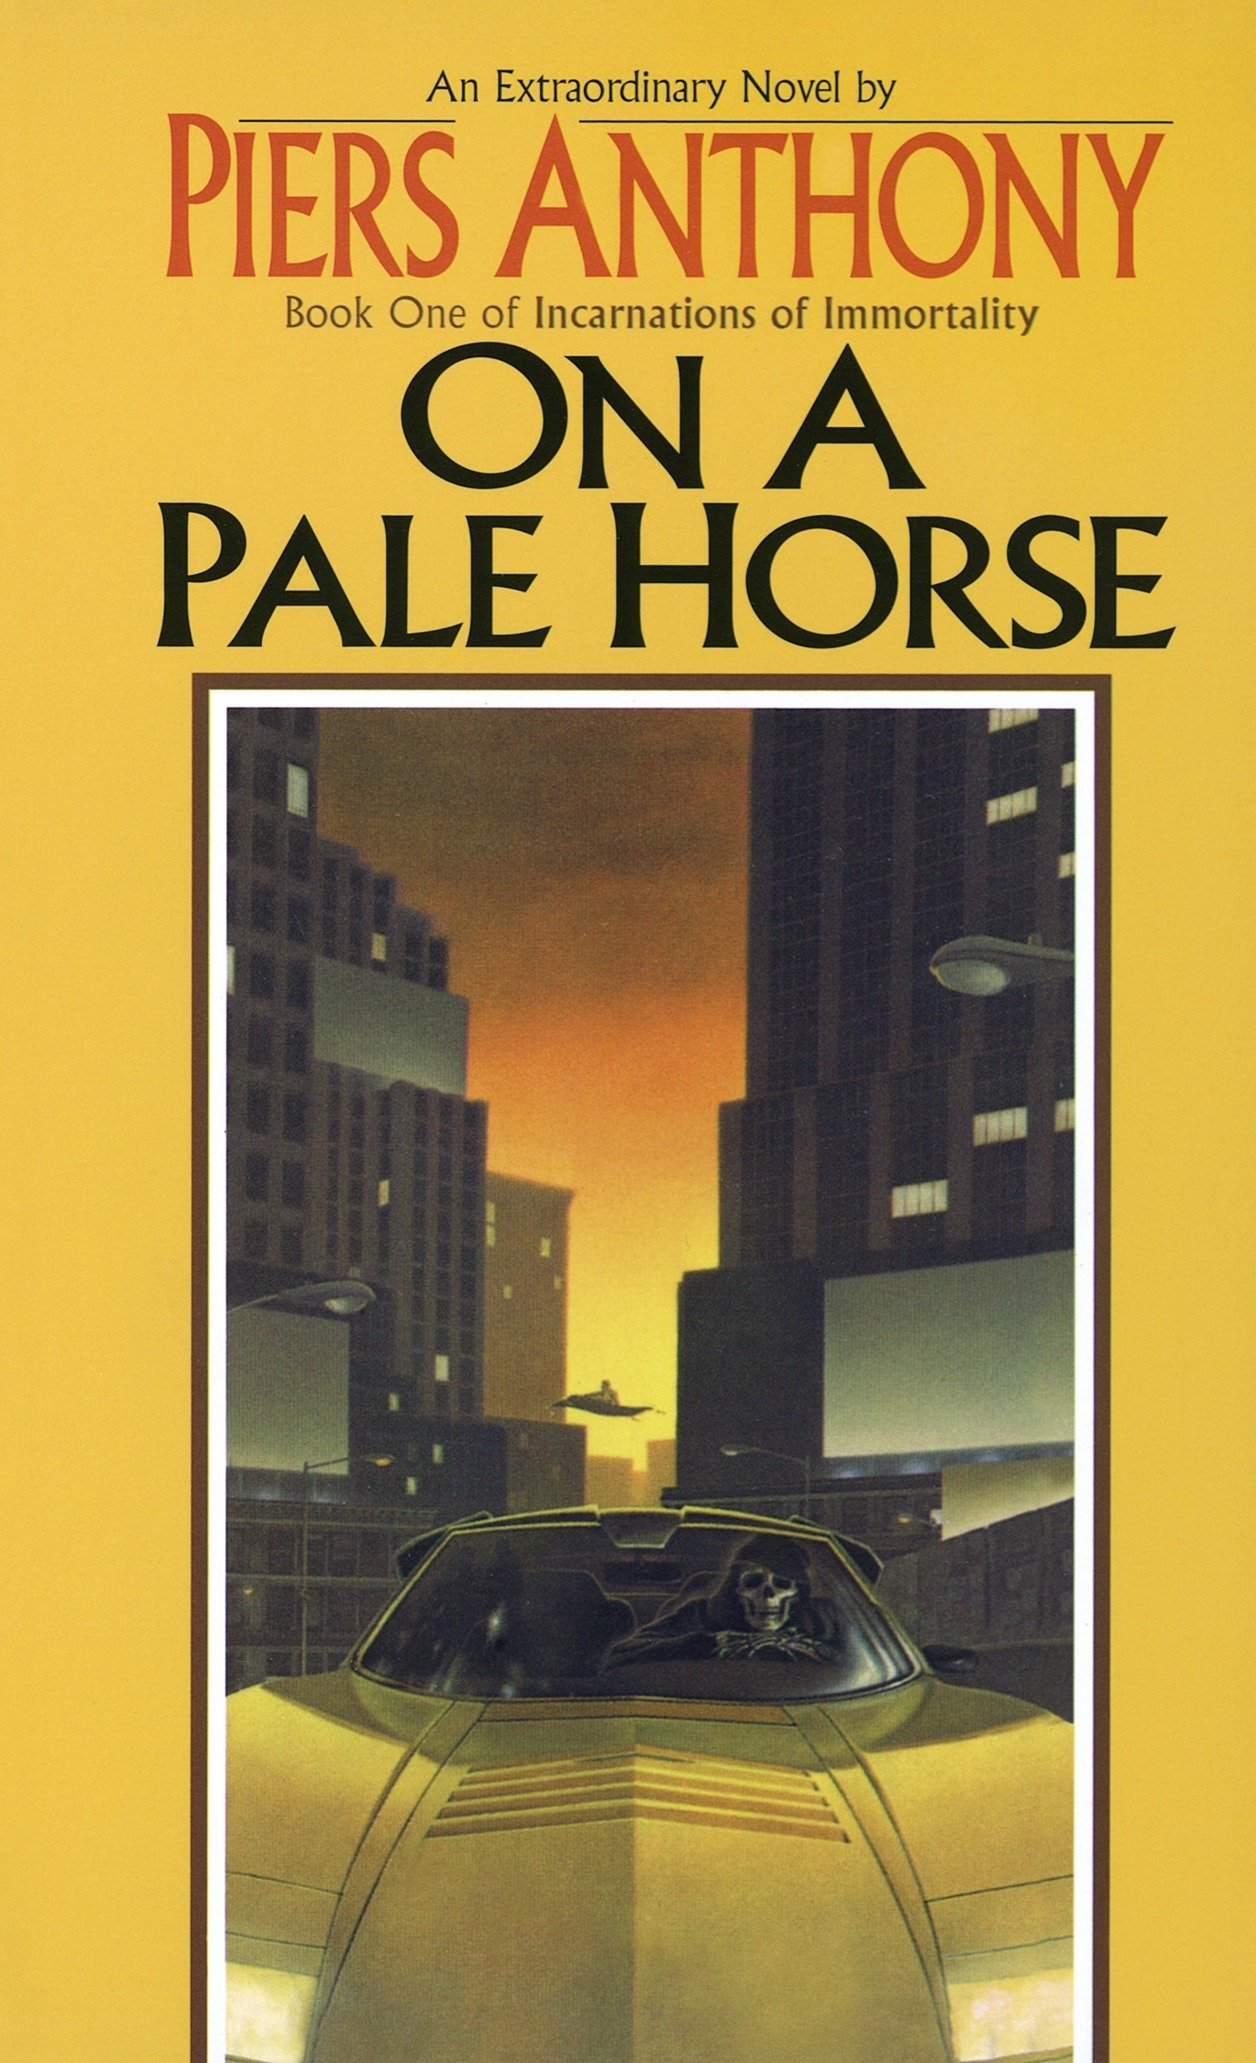 Pale Horse book cover.  An extraordinary novel by Piers Anthony. Book one of incarnations of immortality On A Pale Horse.